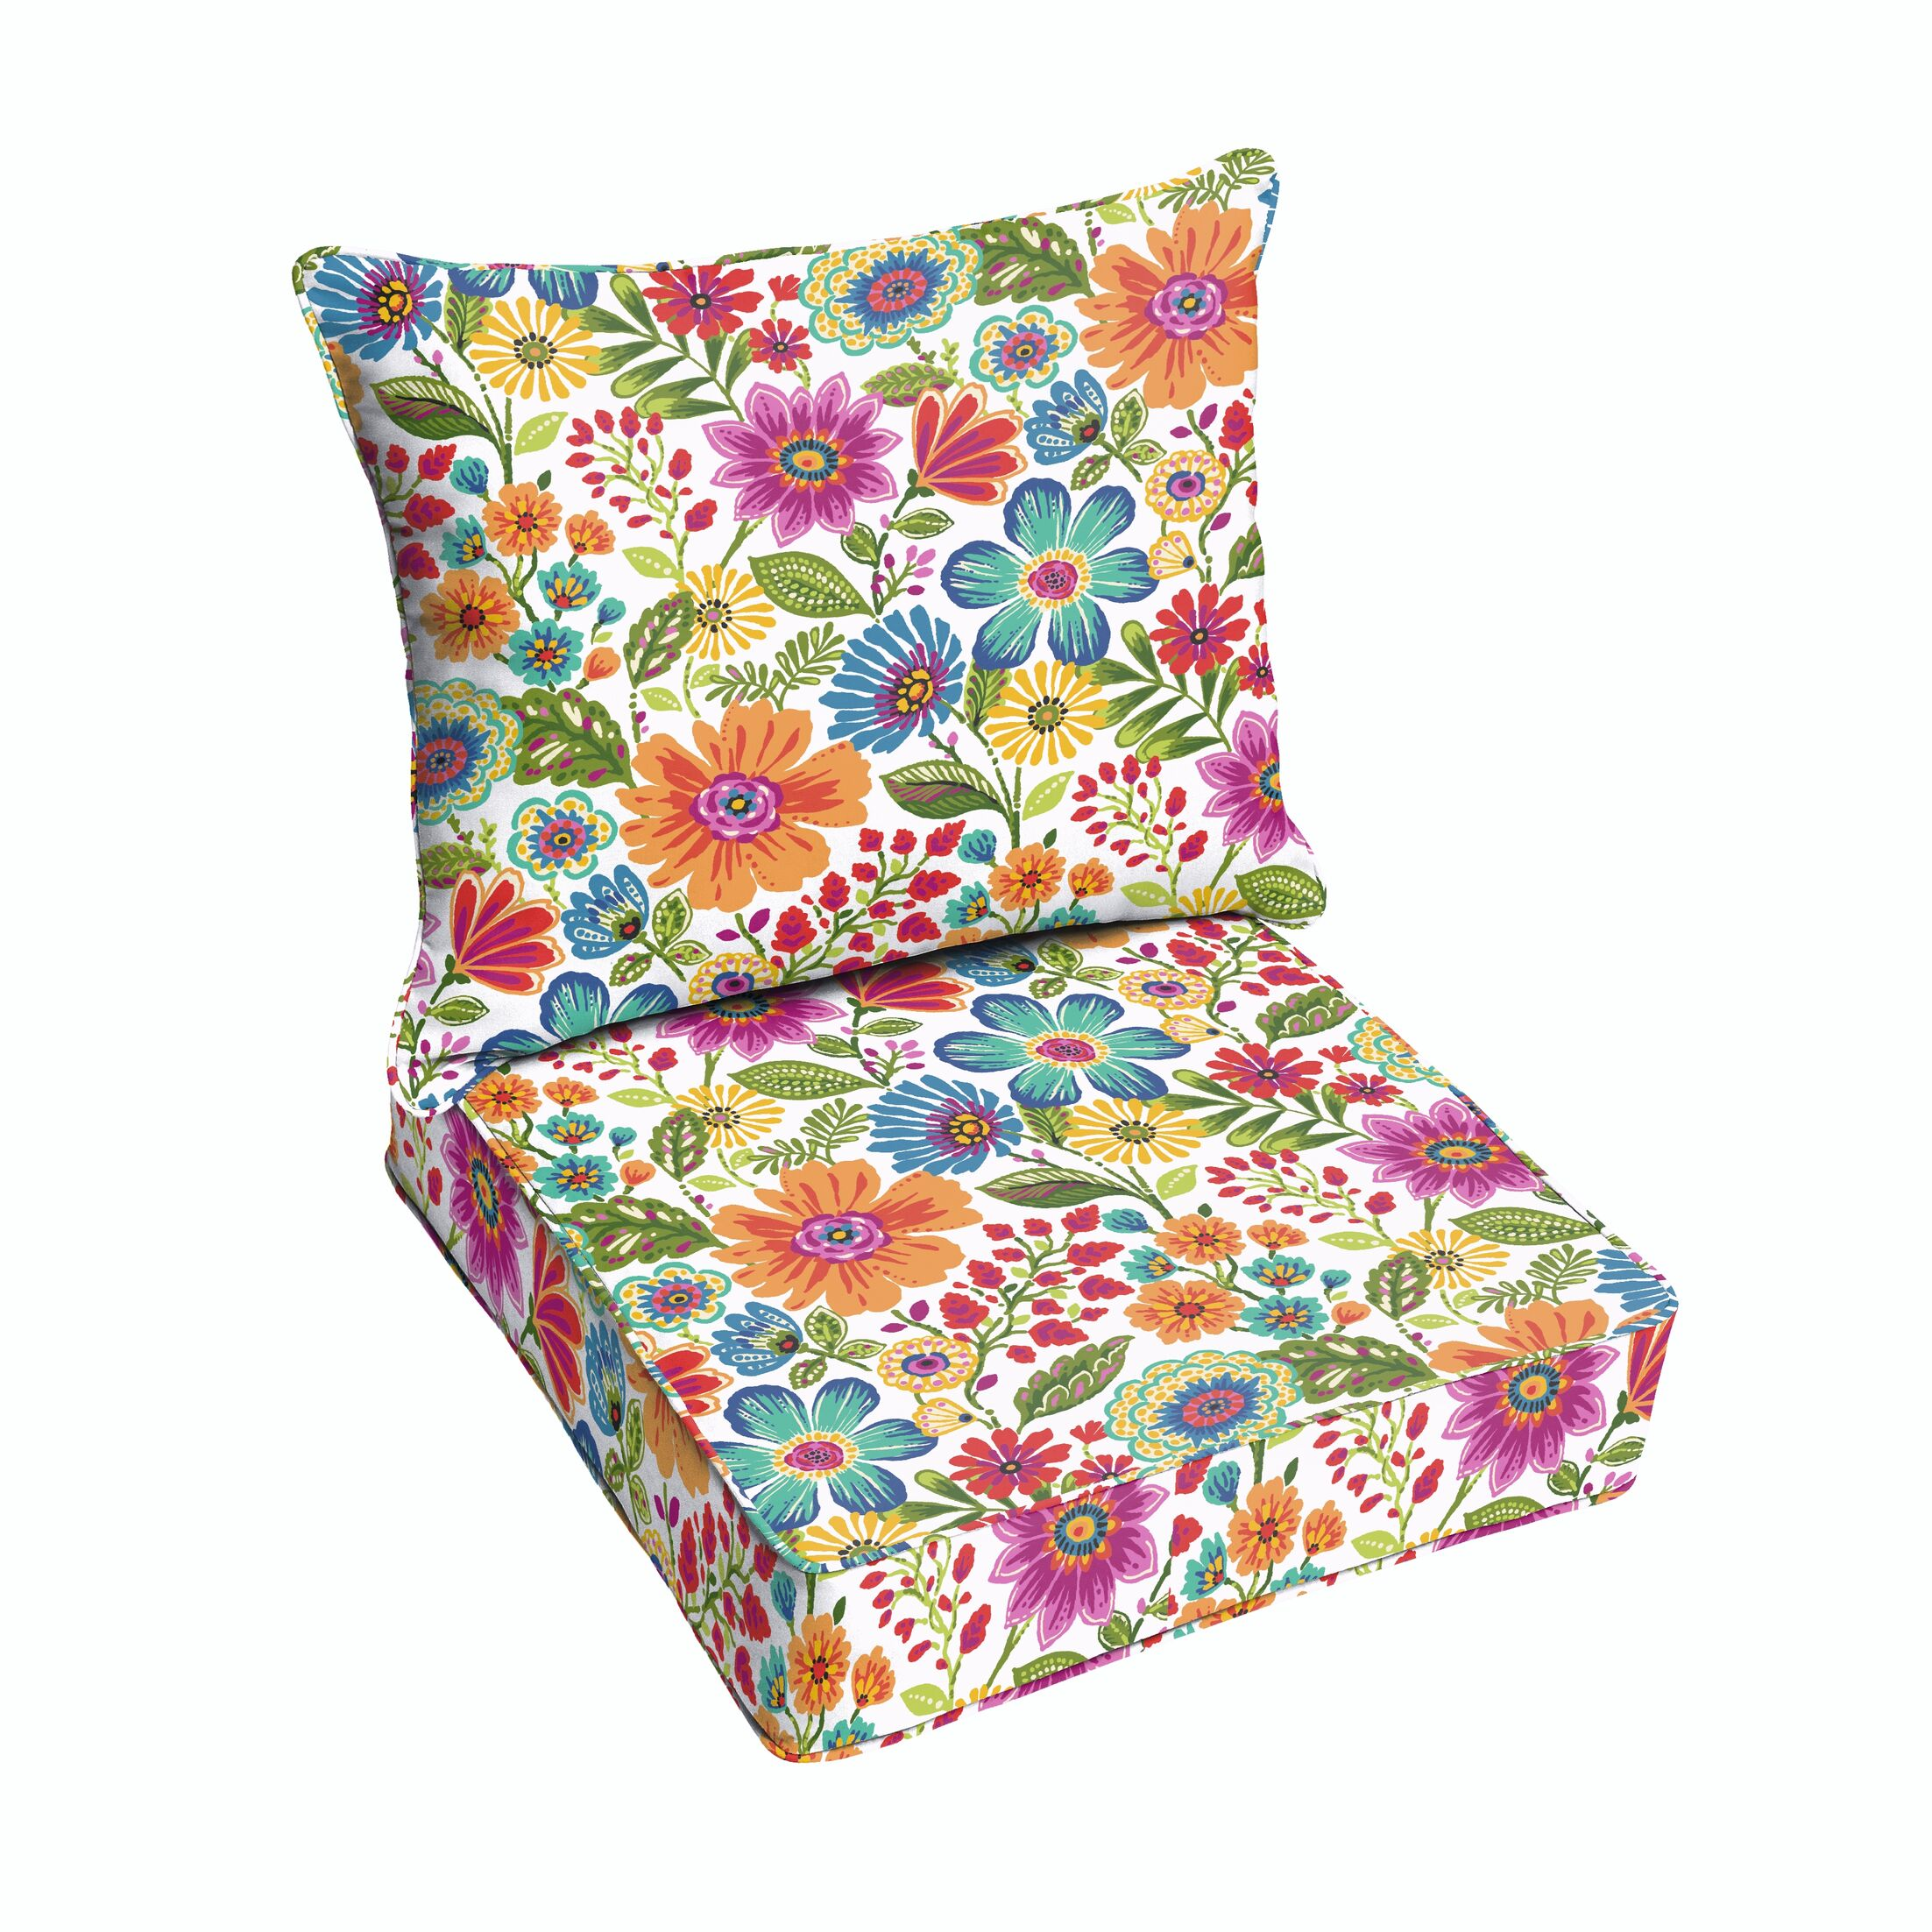 Paxton Floral Piped Indoor/Outdoor Lounge Chair Cushion